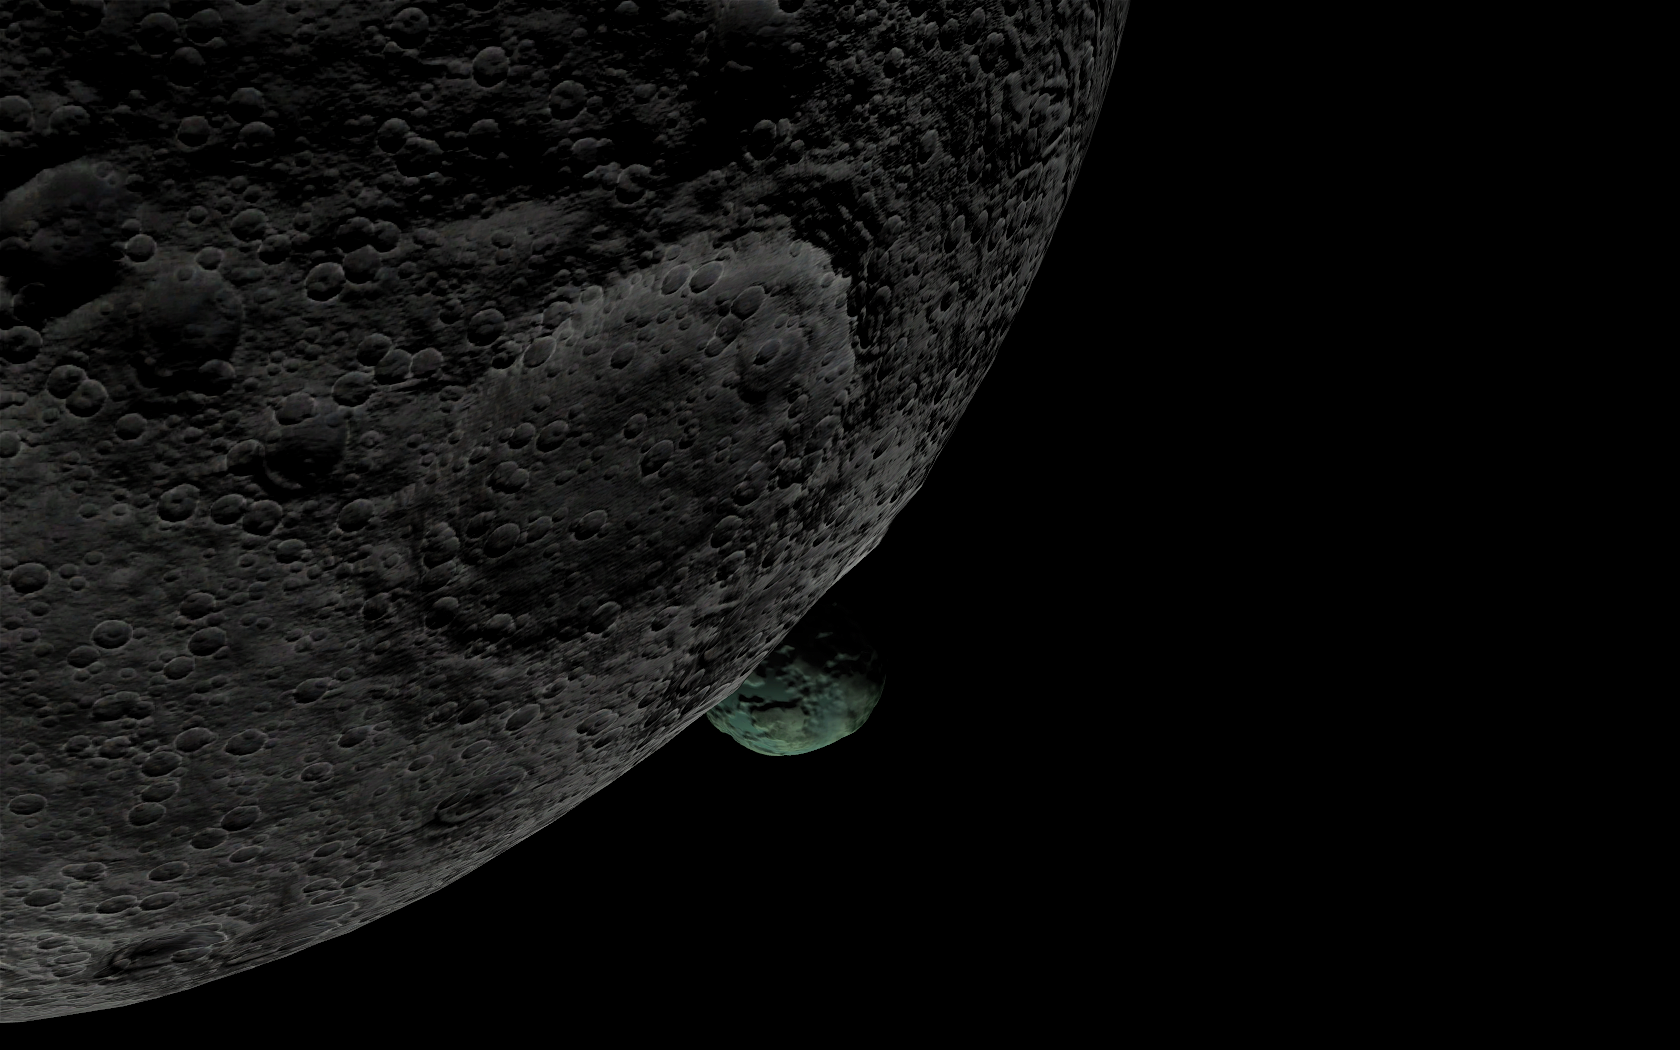 Mun and Minmus are just 0.6 degrees apart